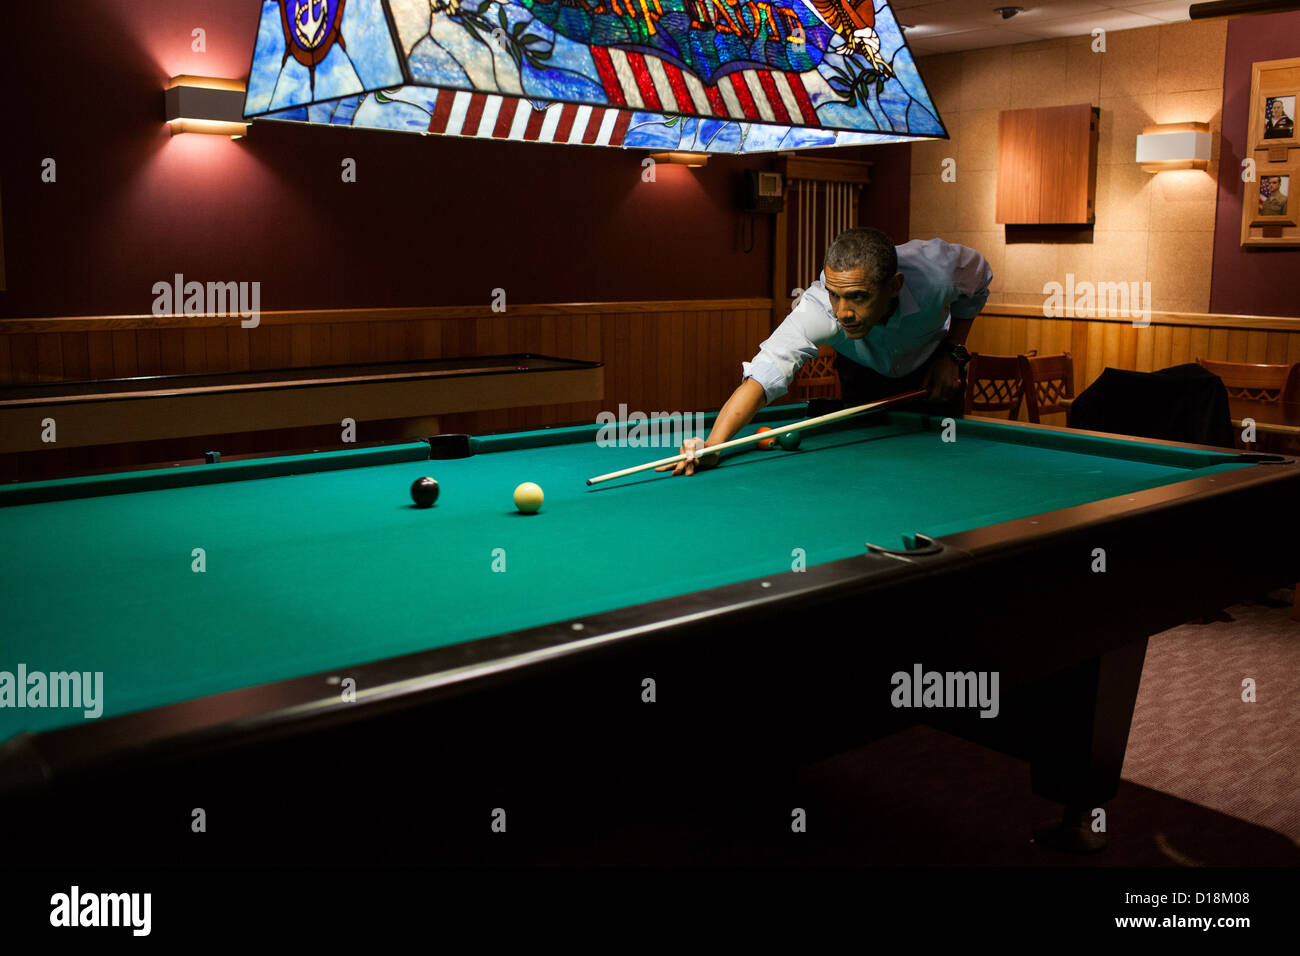 President Barack Obama plays a game of pool following the conclusion of the G8 Summit at Camp David, Md., May 19, - Stock Image